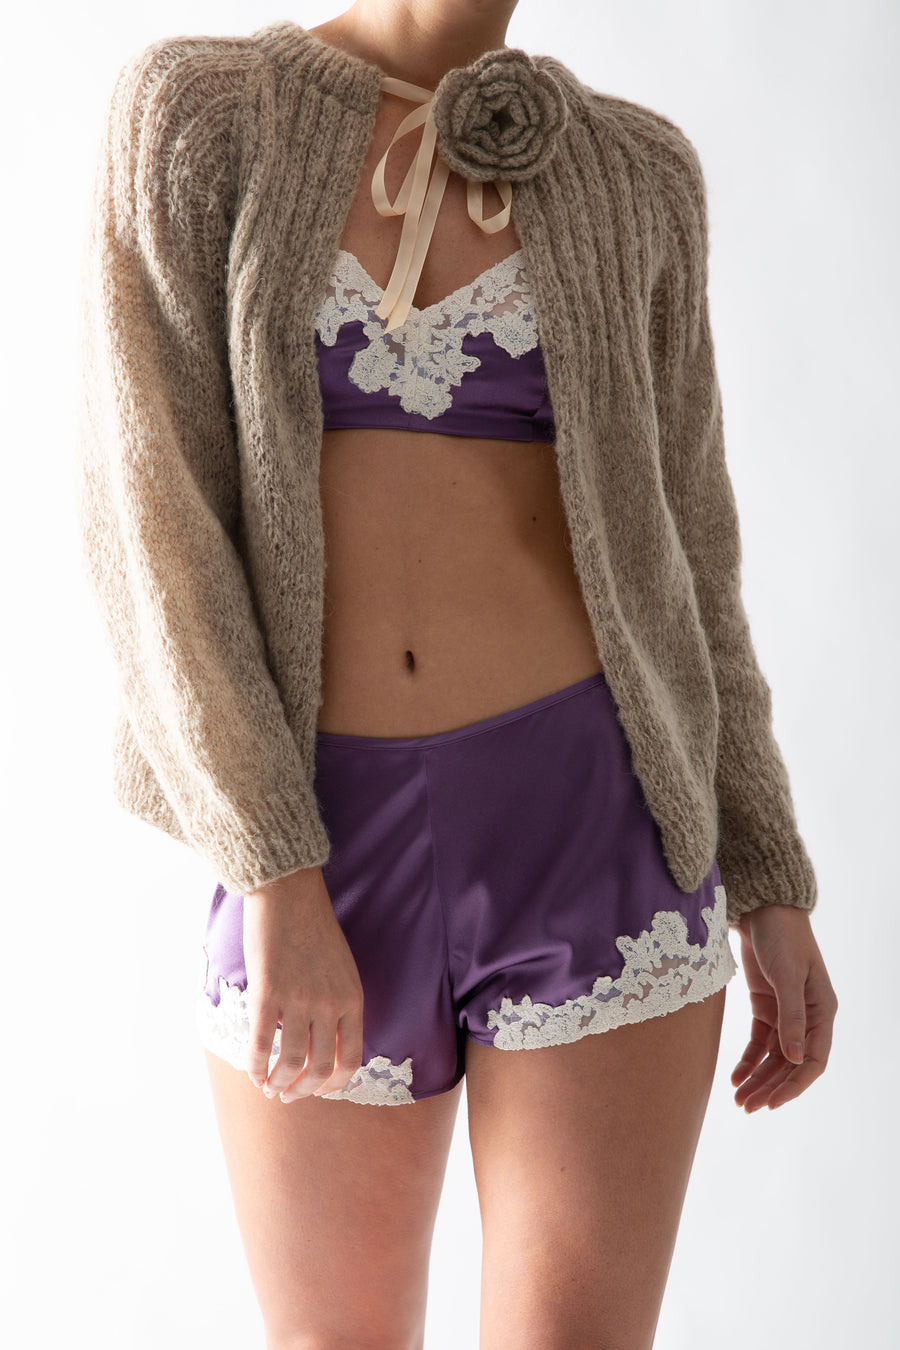 This is a photo of a woman wearing a purple silk bra and shorts with a handmade pleated brown khaki colored cardigan. The cardigan is worn tied at the neck and has a flower pin on one shoulder.